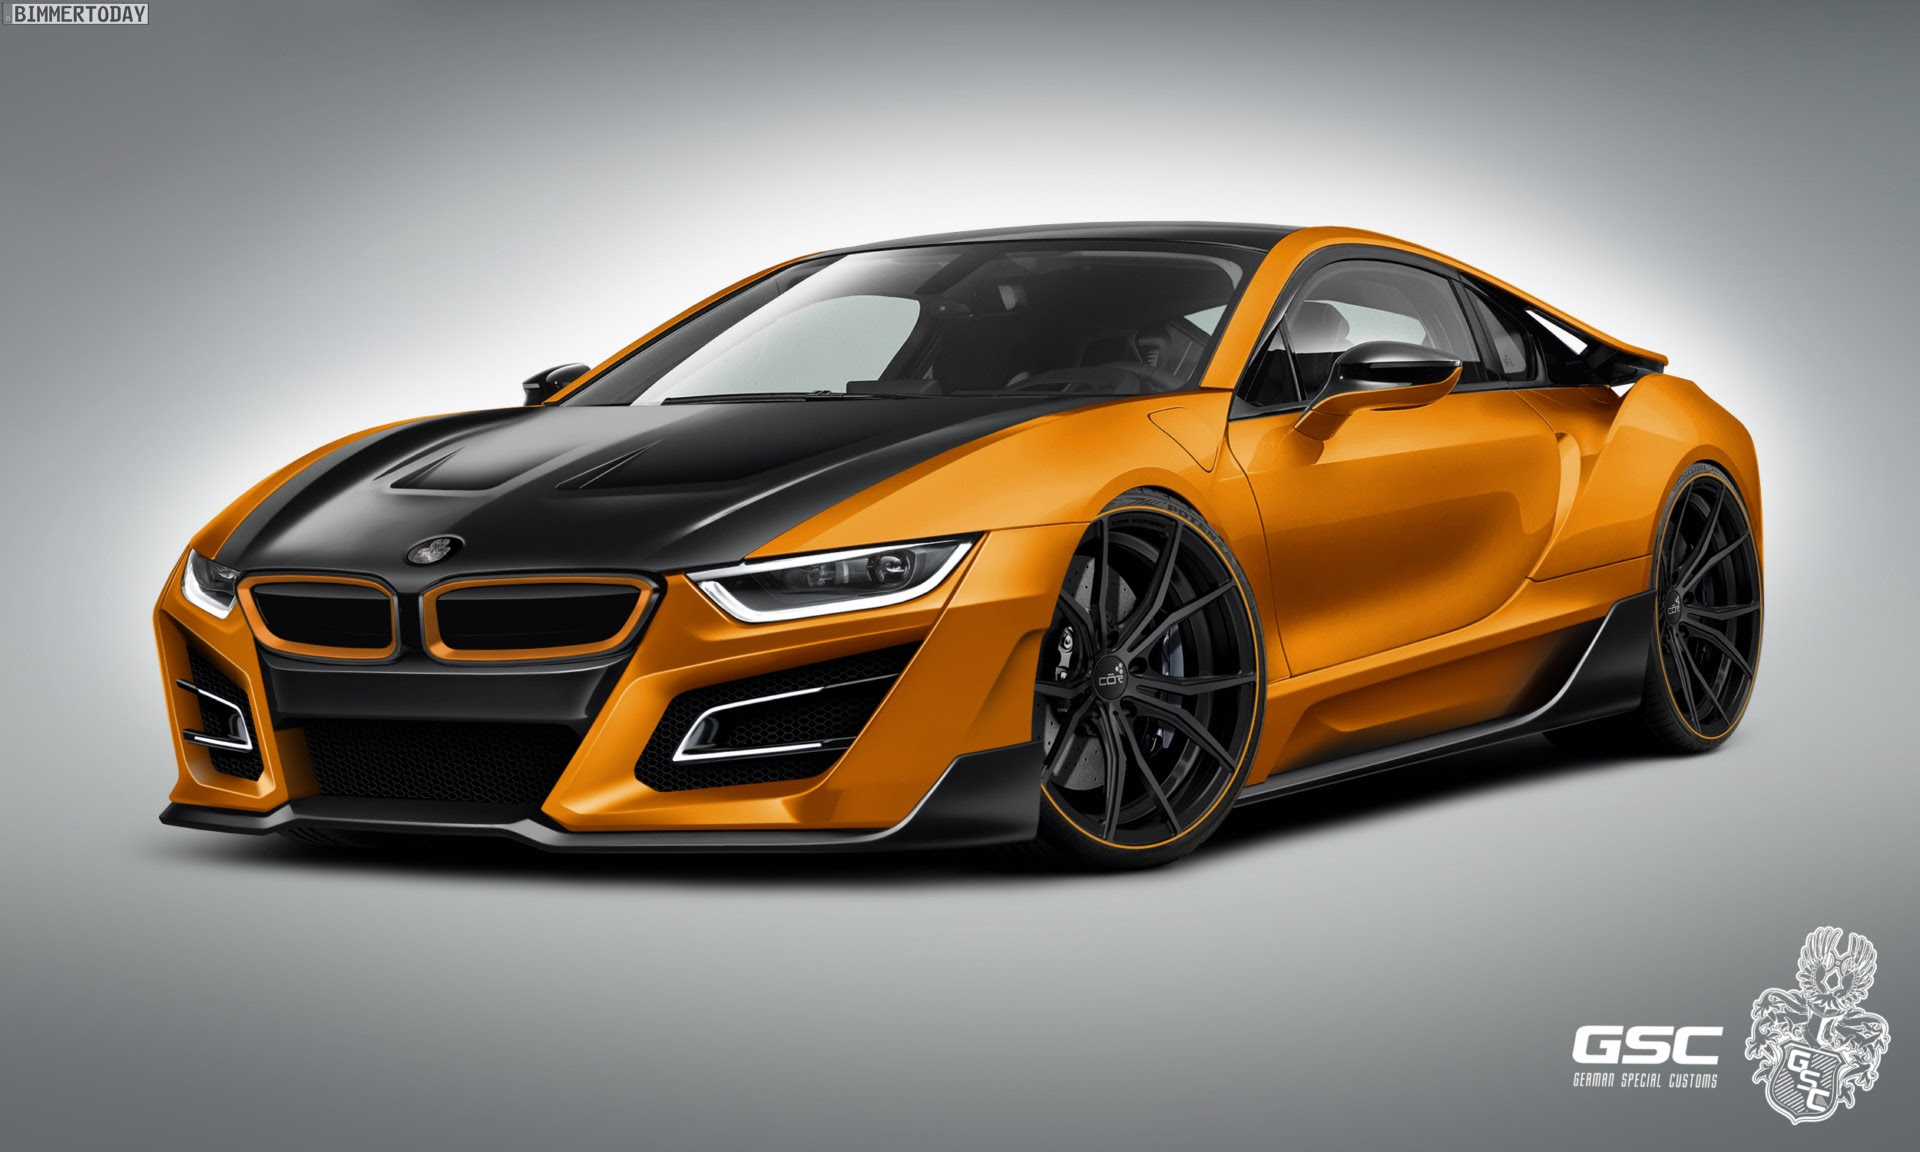 GSC-BMW-i8-Tuning-German-Special-Customs-BMW-i8-iTRON-Bodykit-05.jpg